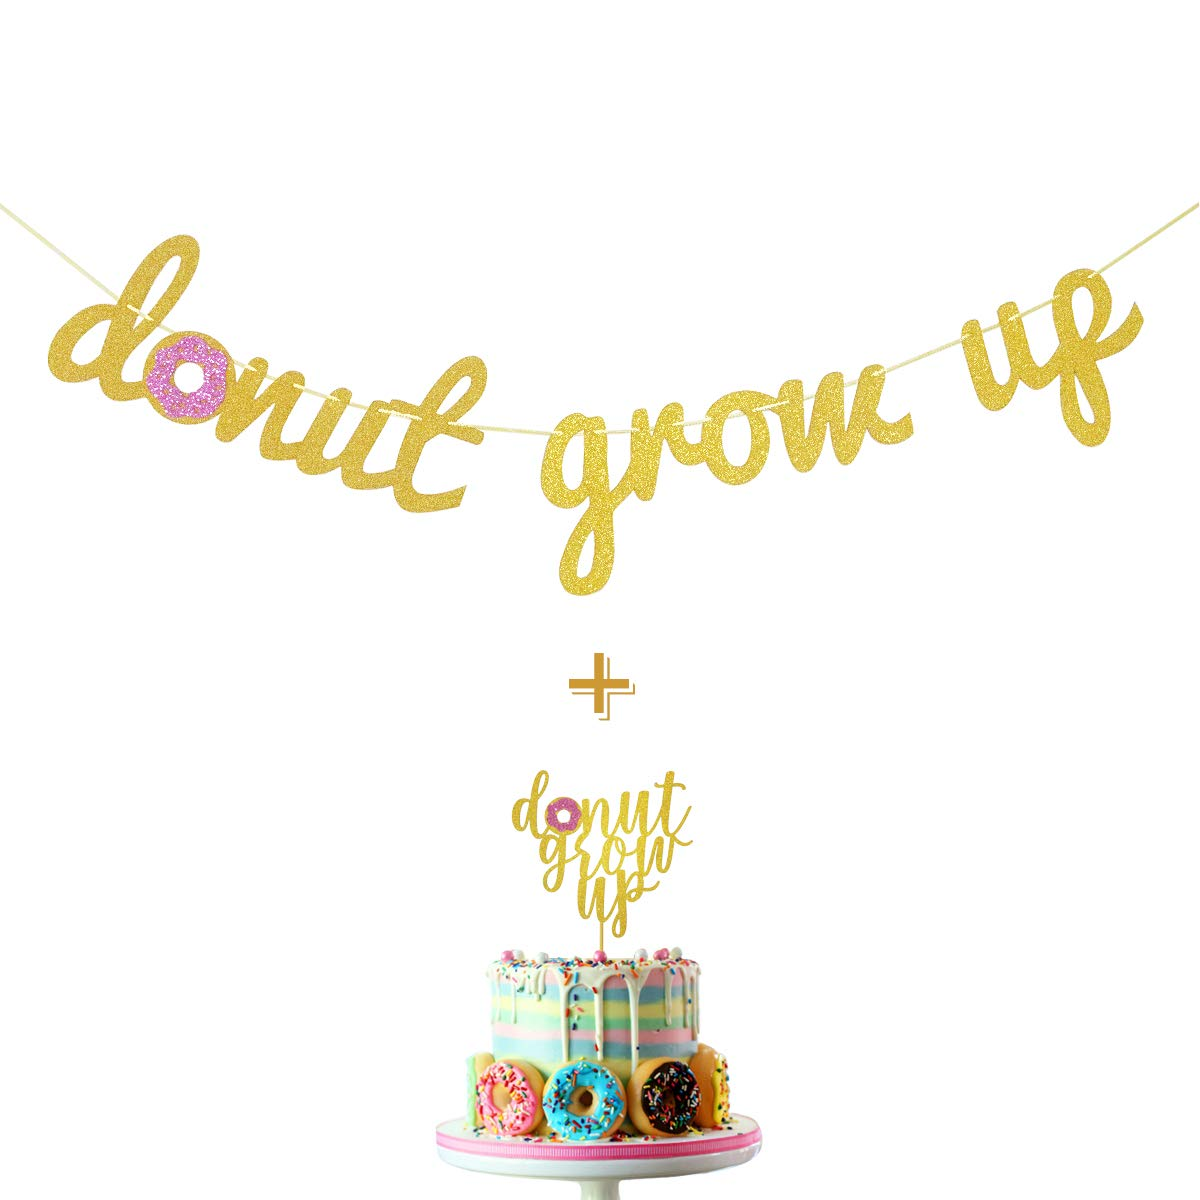 Donut Grow Up Gold Glitter Banner and Donut Grow Up Cake Topper for Donut Themed Happy Birthday Party Supplies Decorations by Fadilo